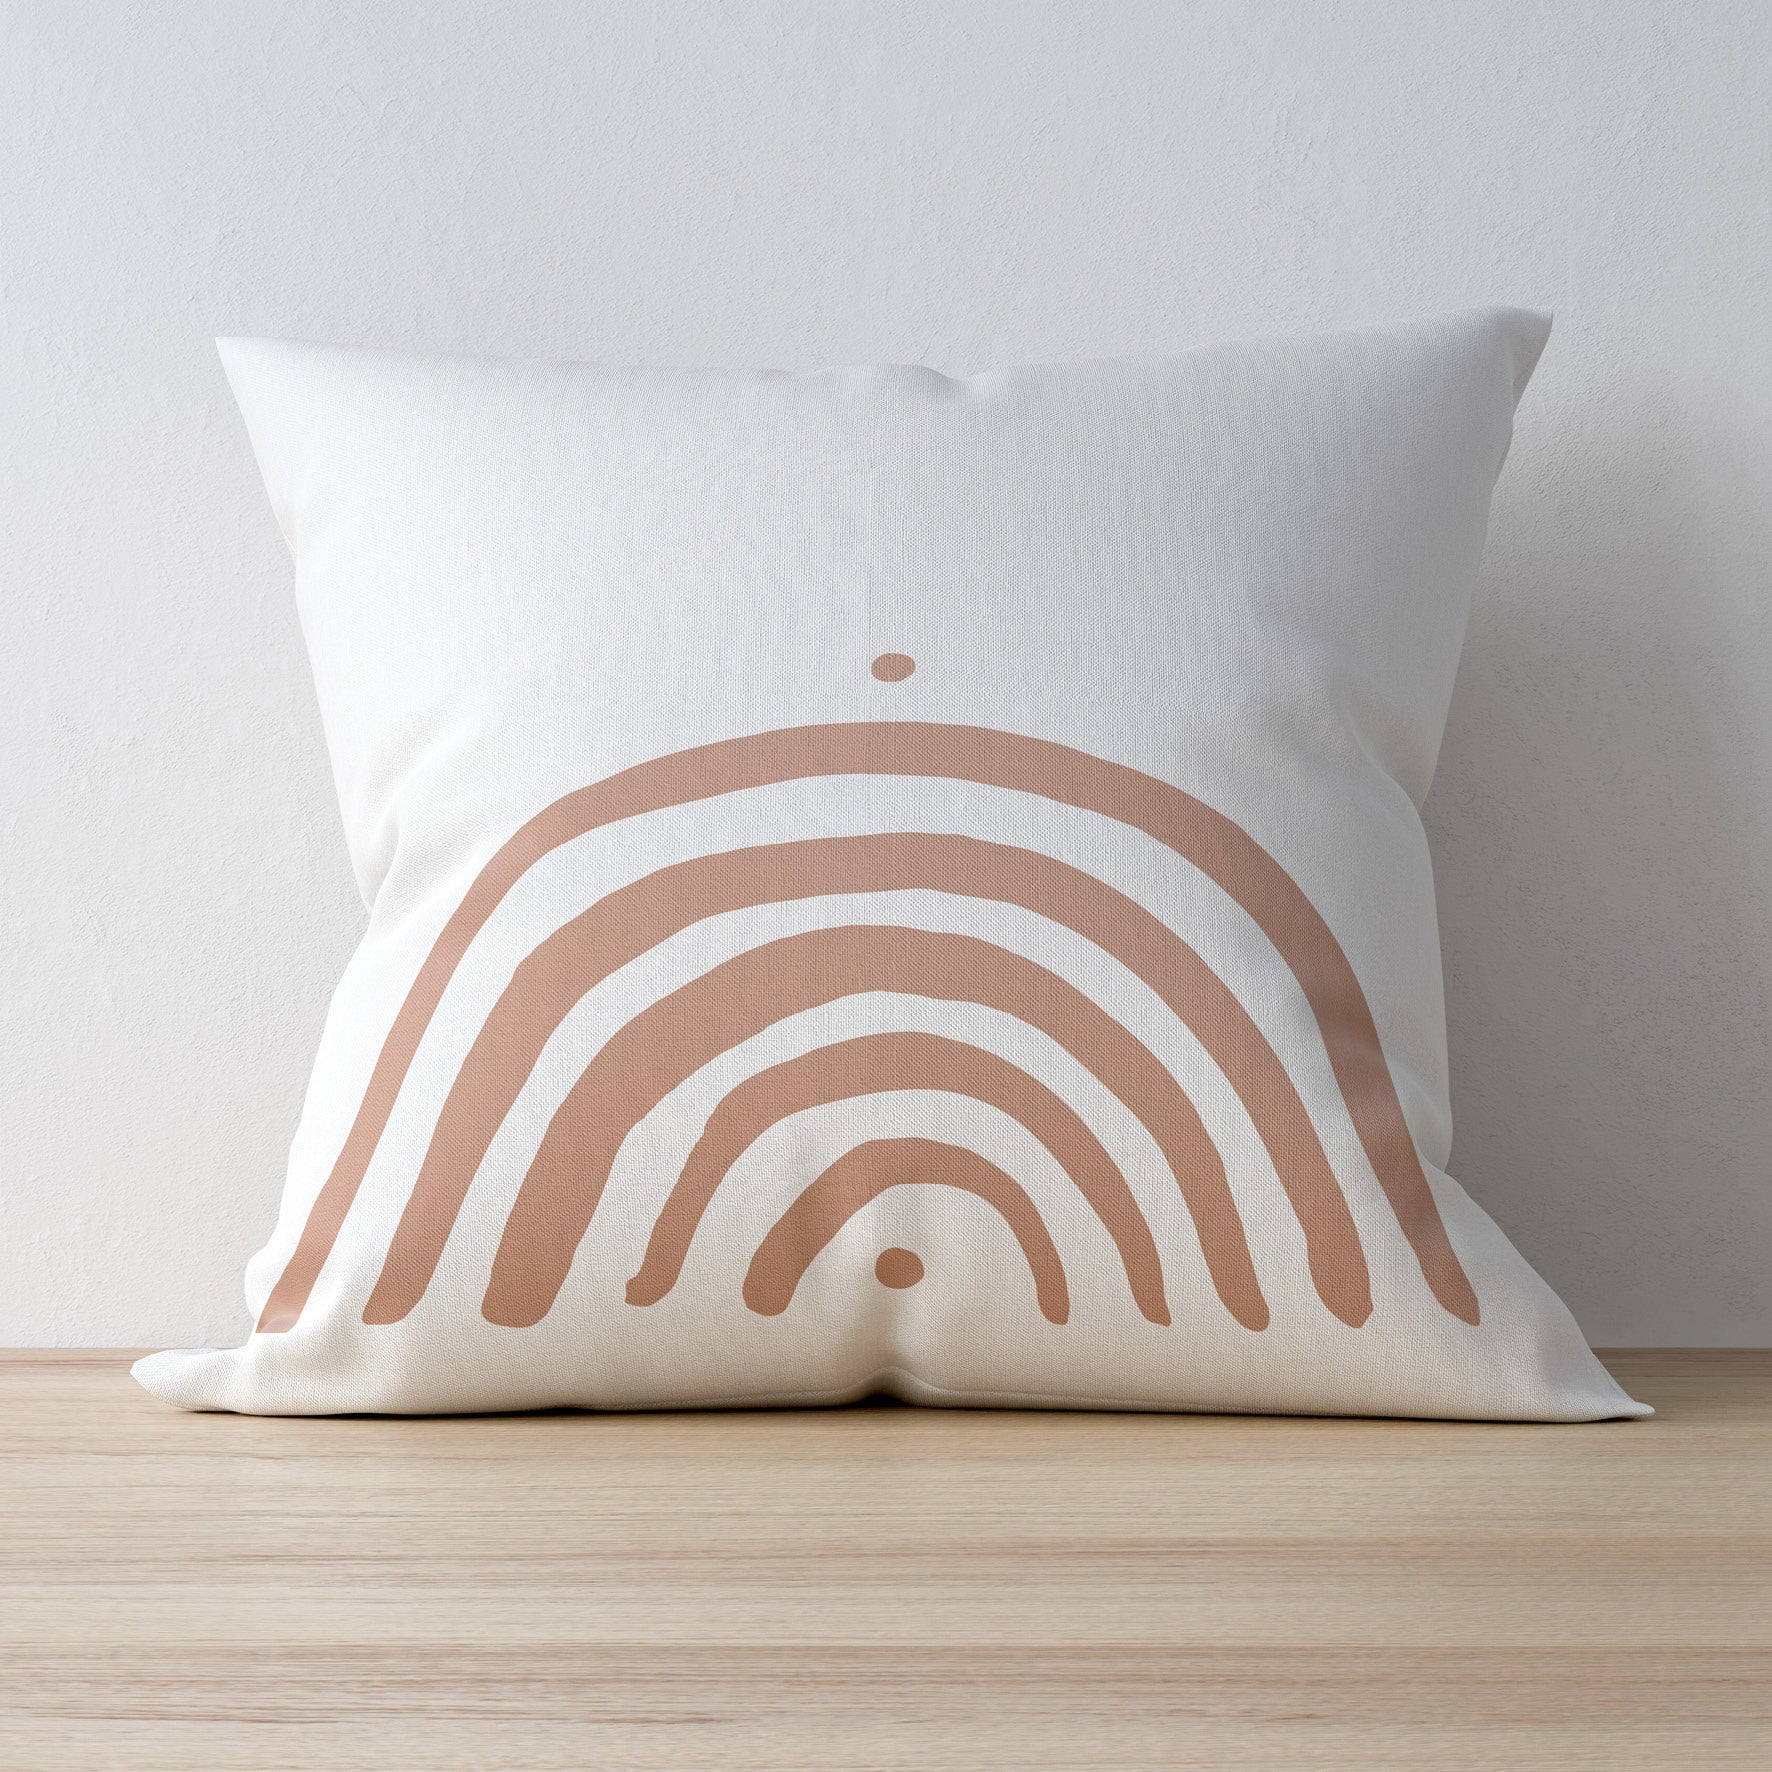 Becks Harrop - Printed Sunrise Pillow Case